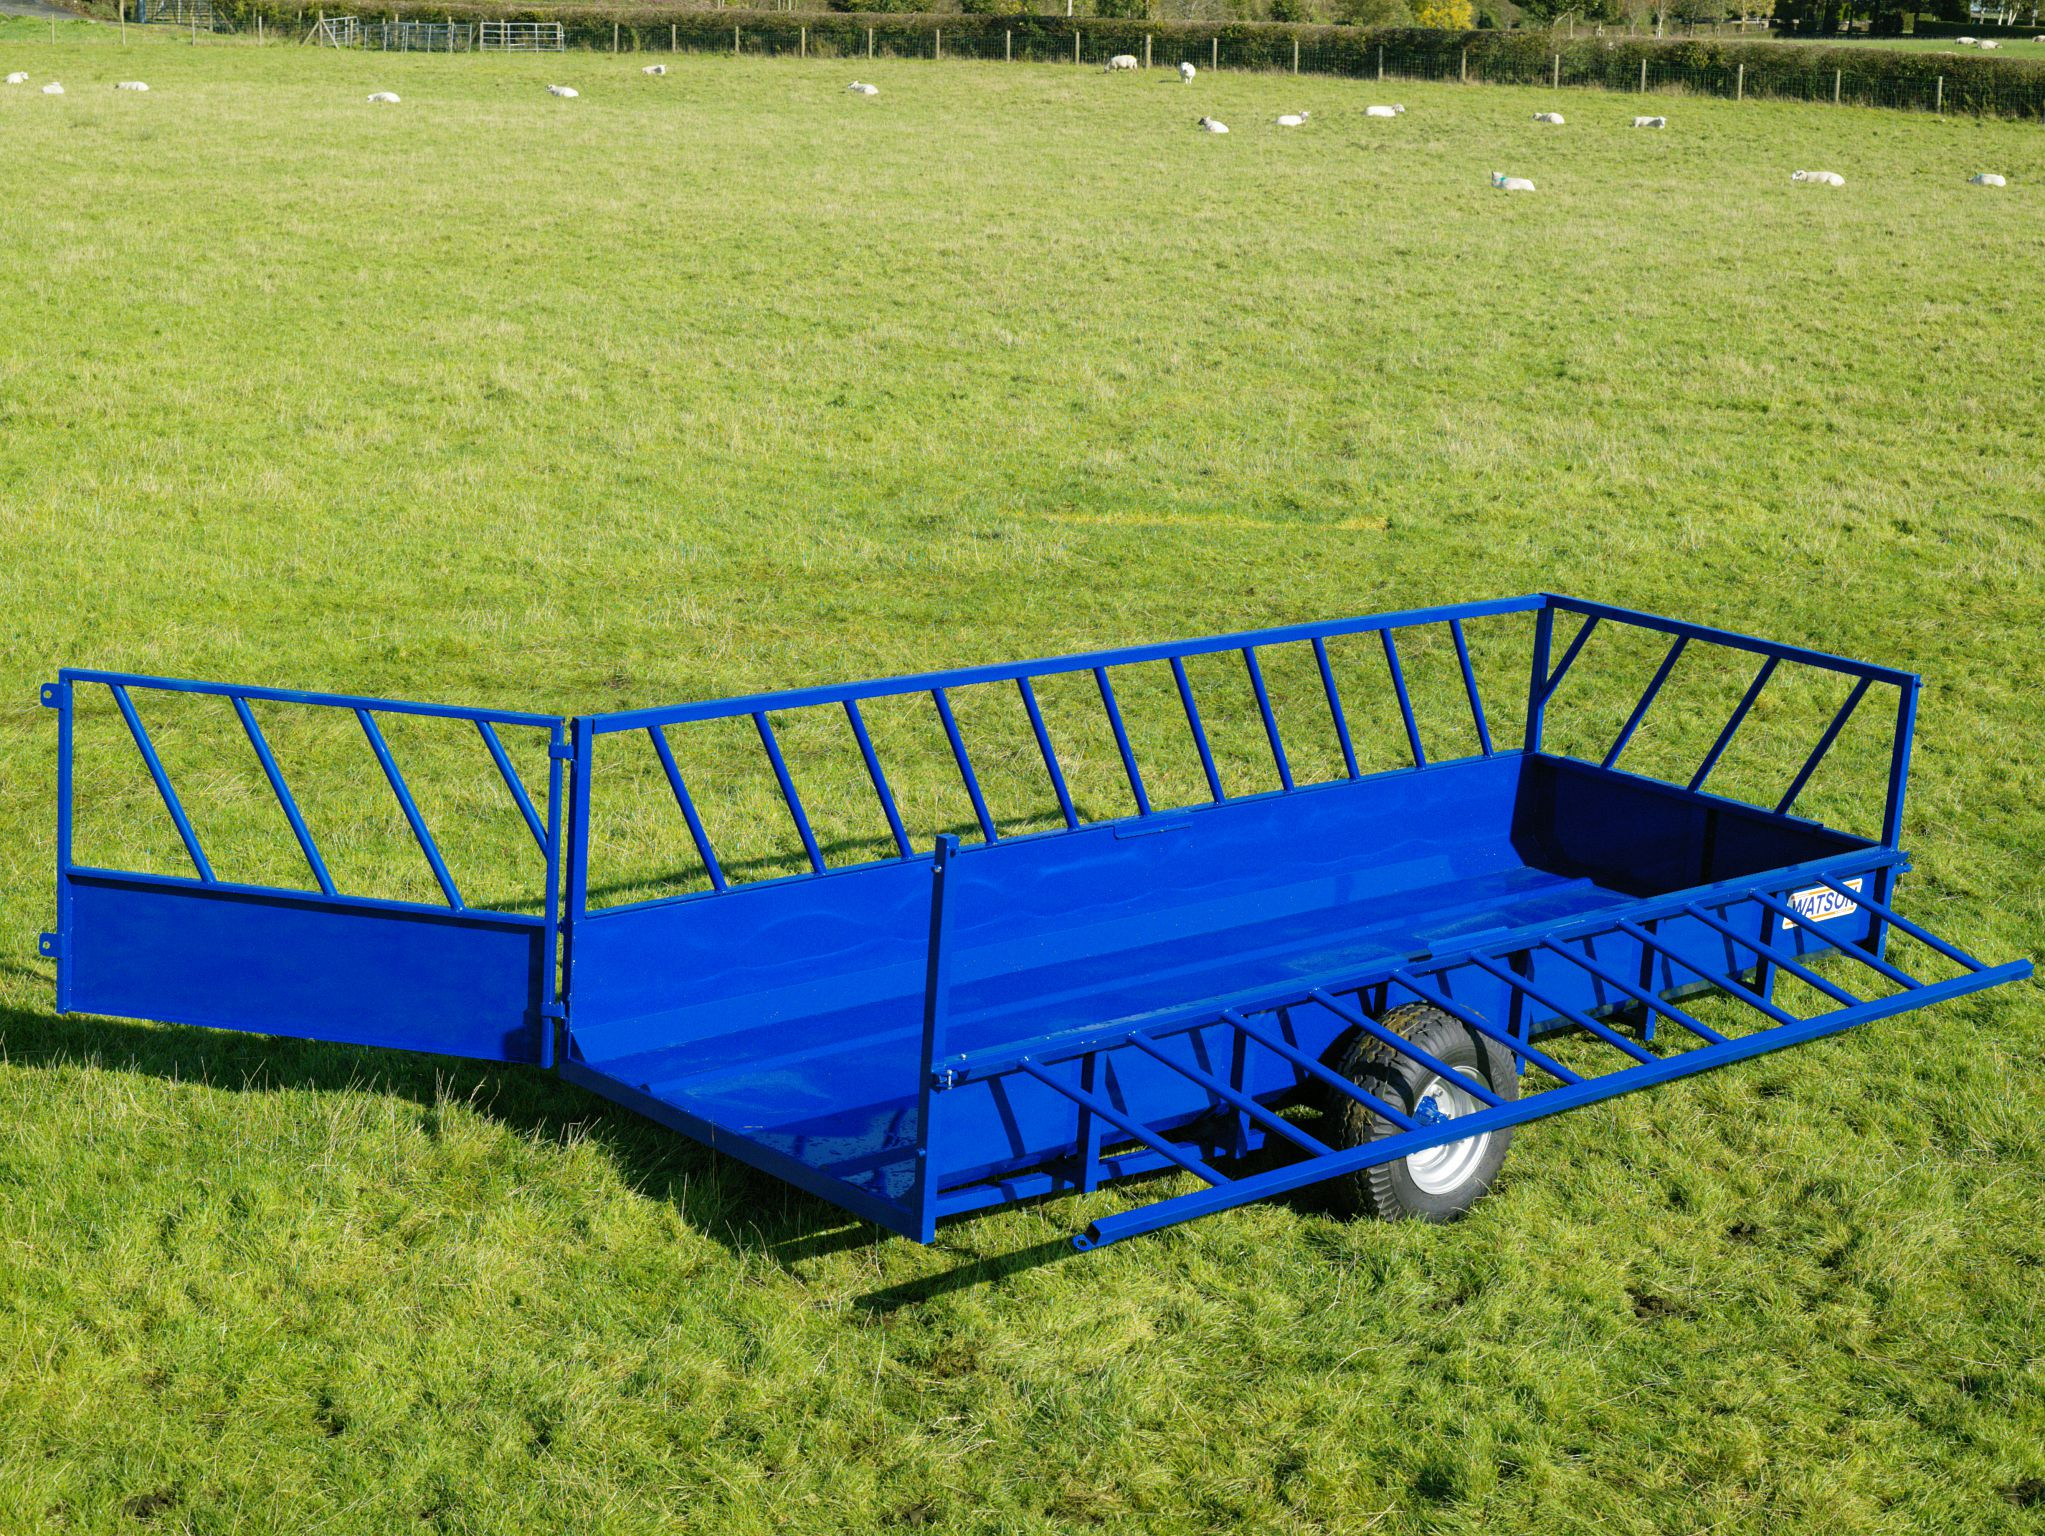 Walter Watson 16ft x 6ft Feeding Trailer